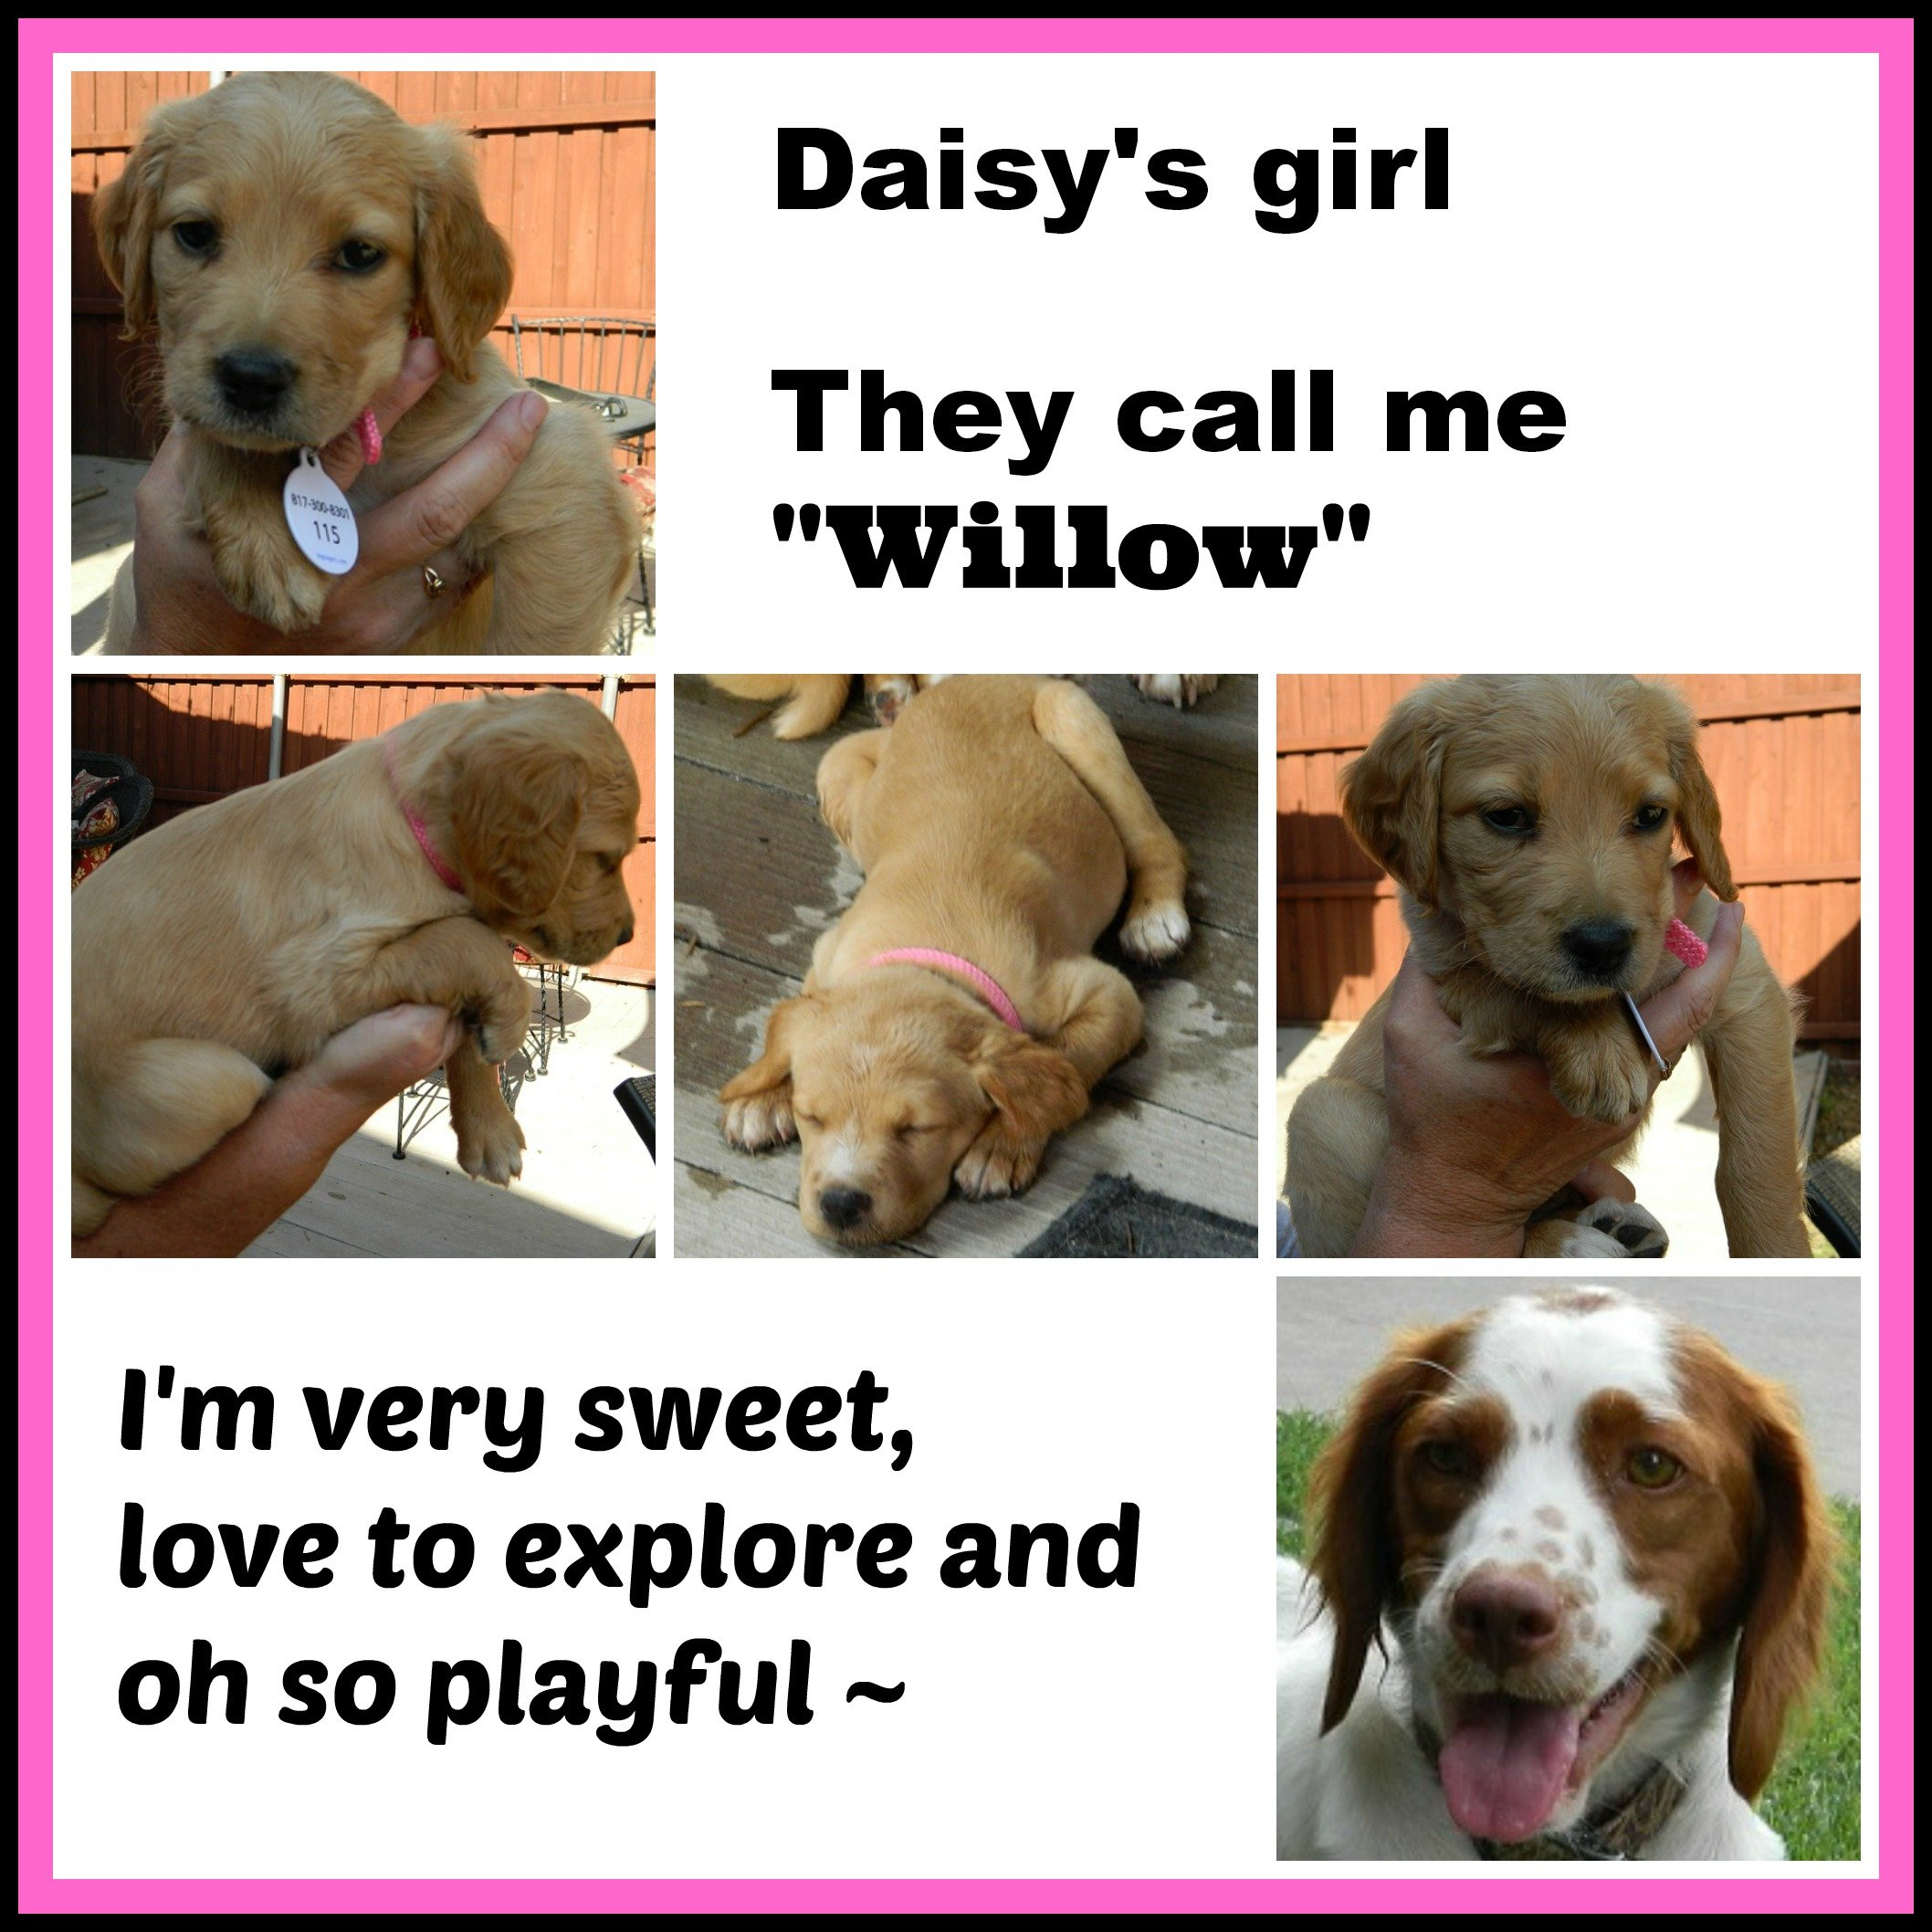 DAISY '14 - website puppy - Willow  7-13-14